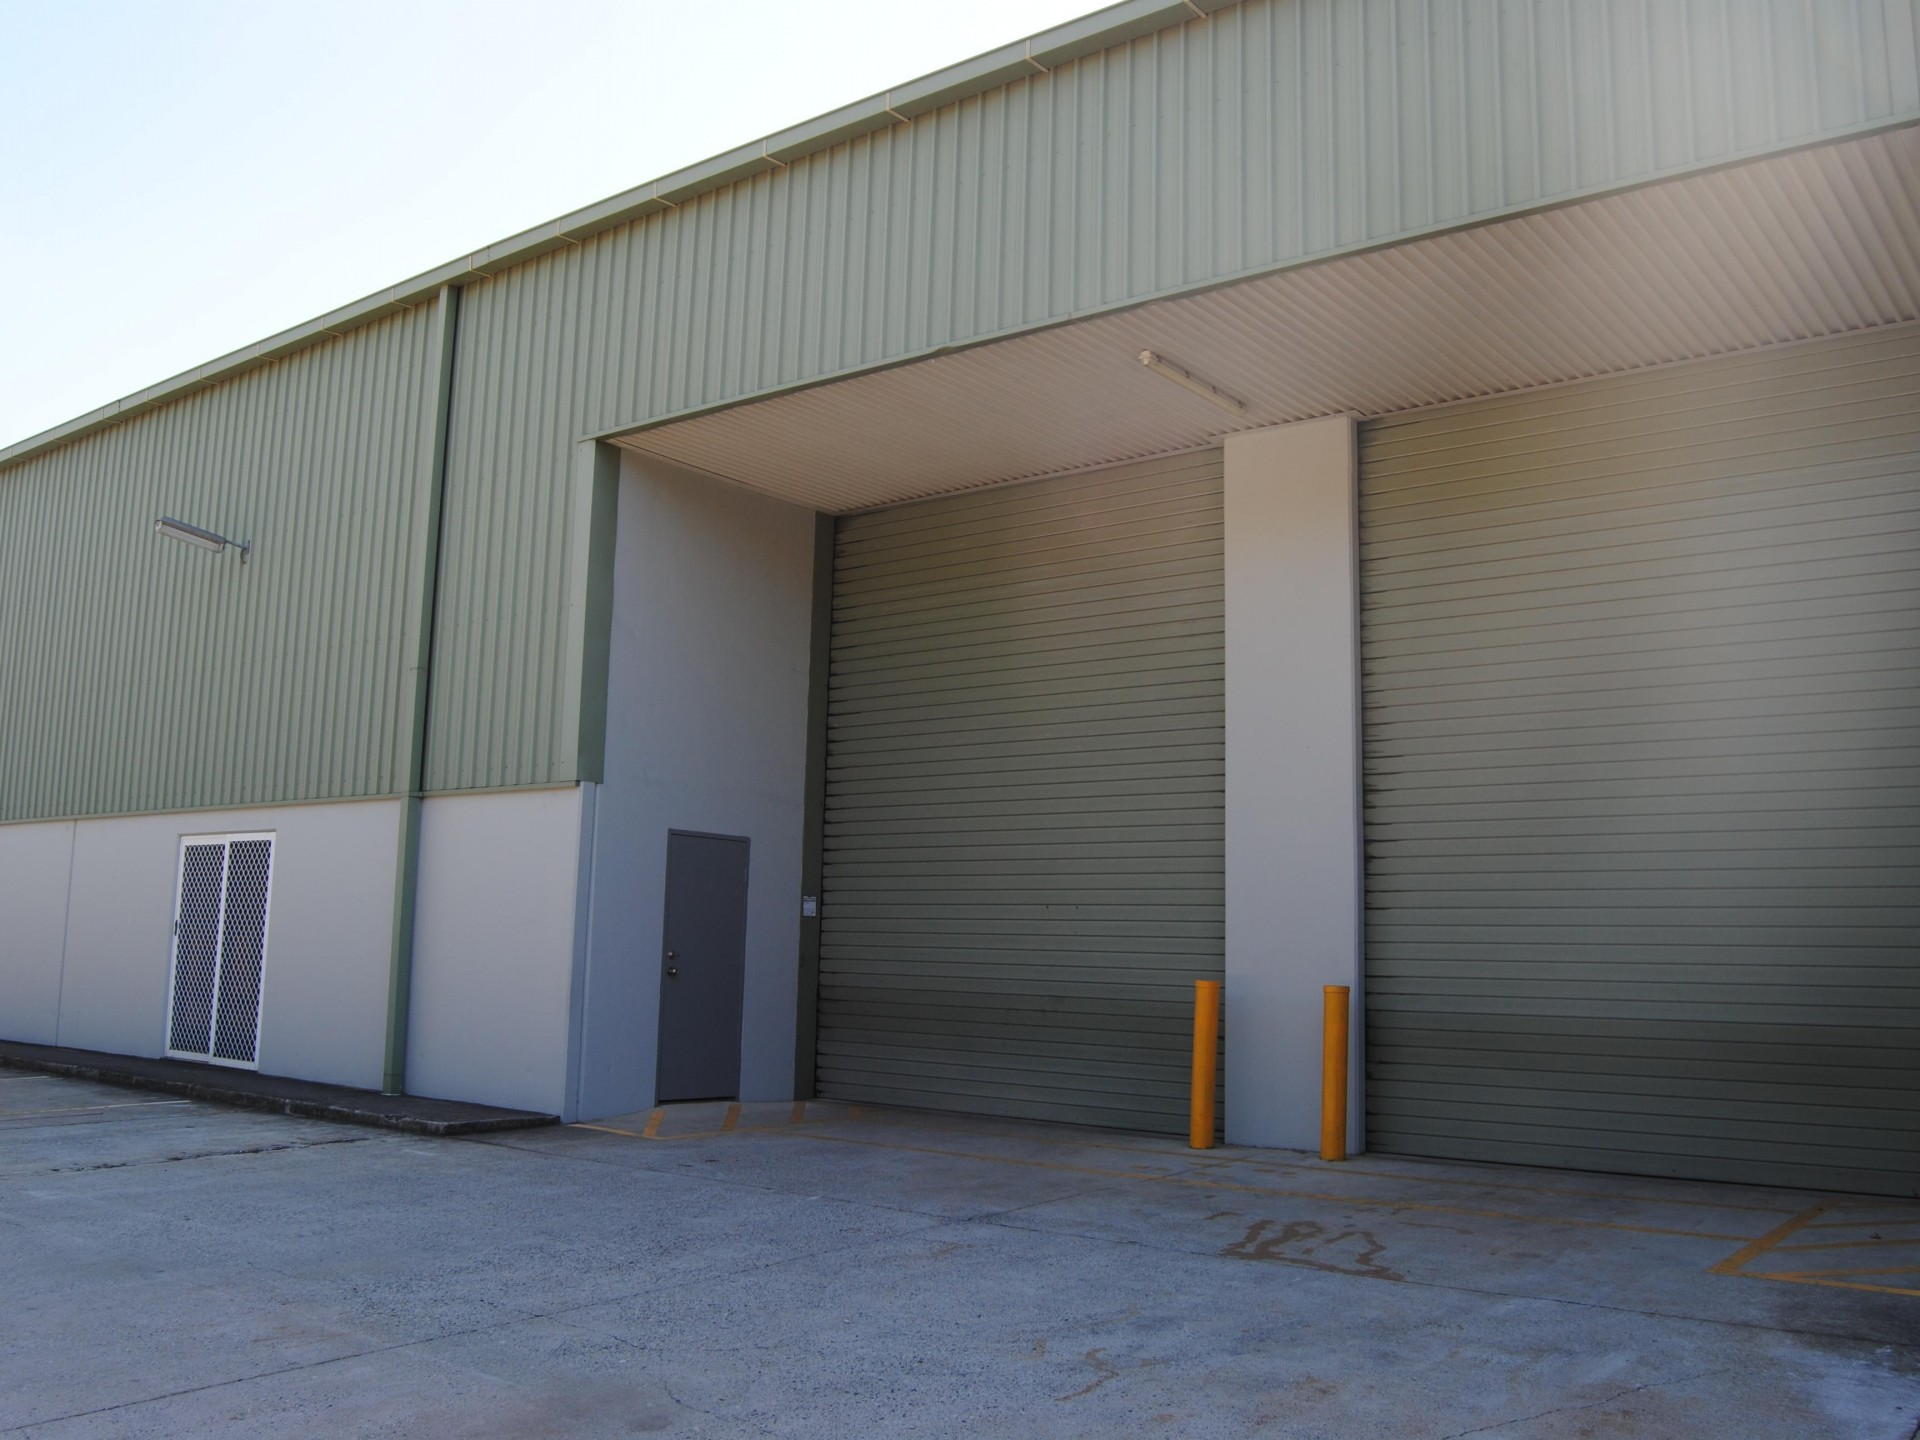 300m2 - 600m2 Warhouse Options With Offices & Amenities